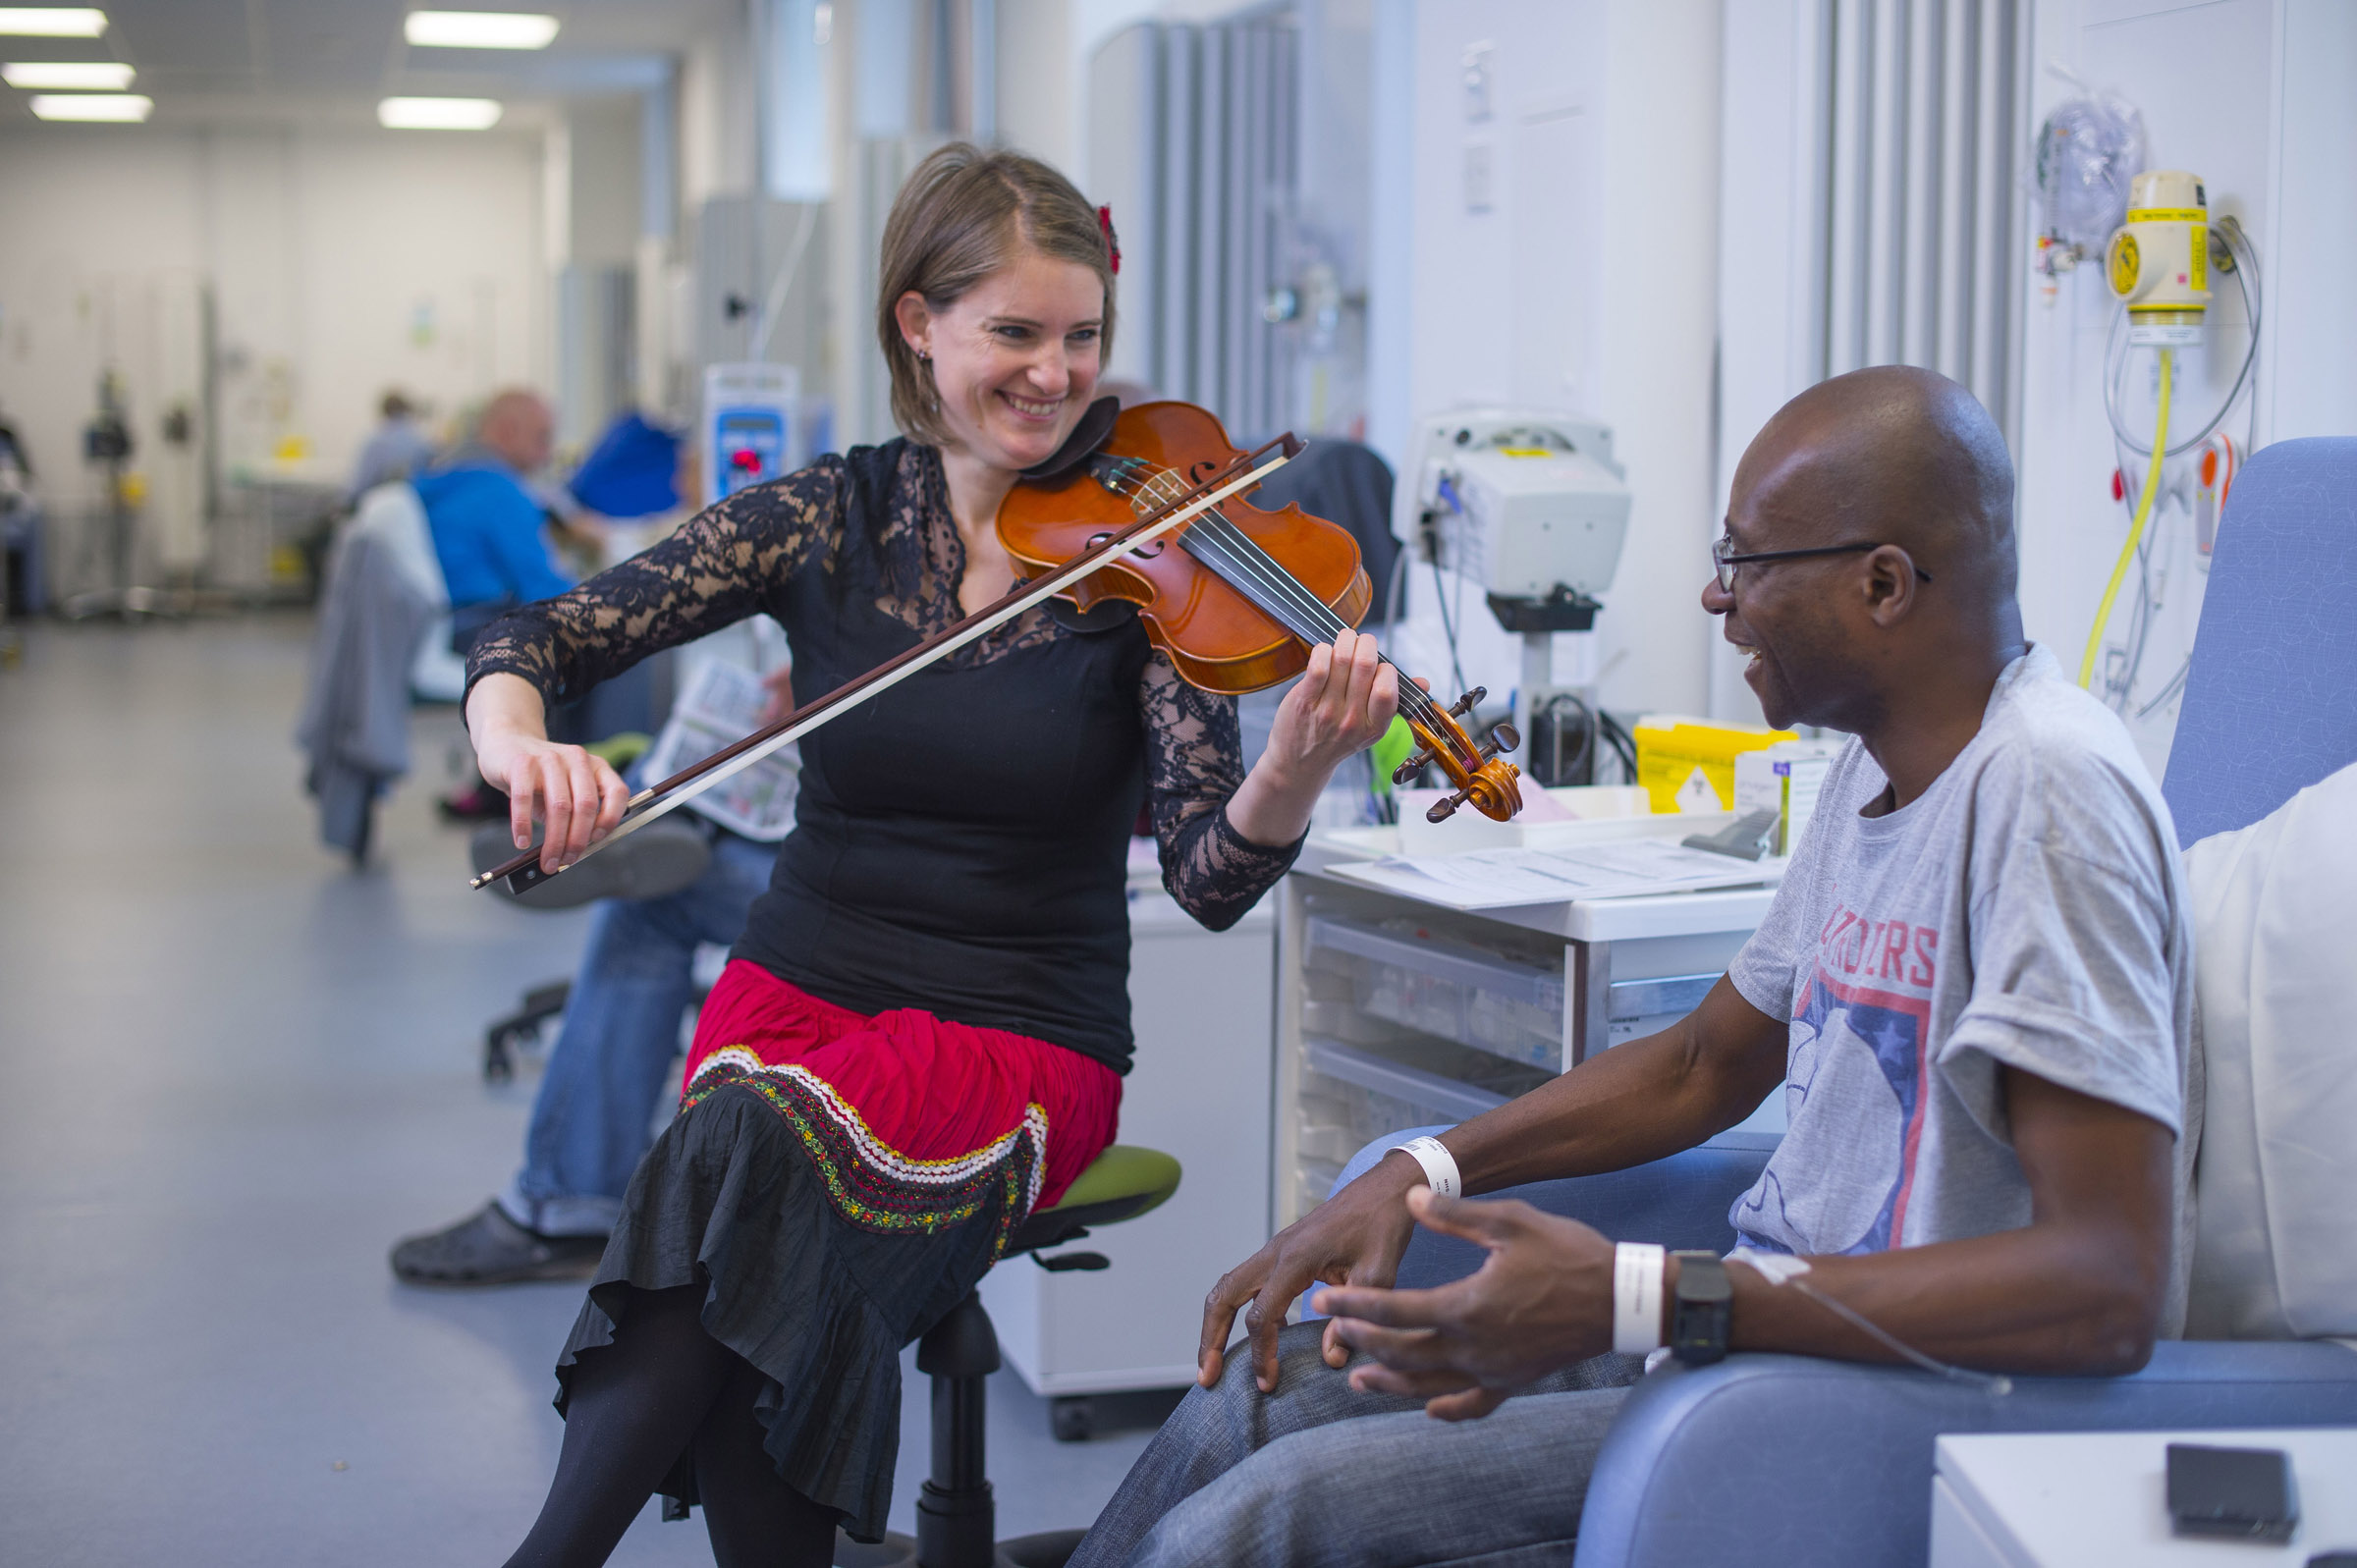 musicians from superact performed in waiting areas and on wards during the fresh arts festival curated by willis newson